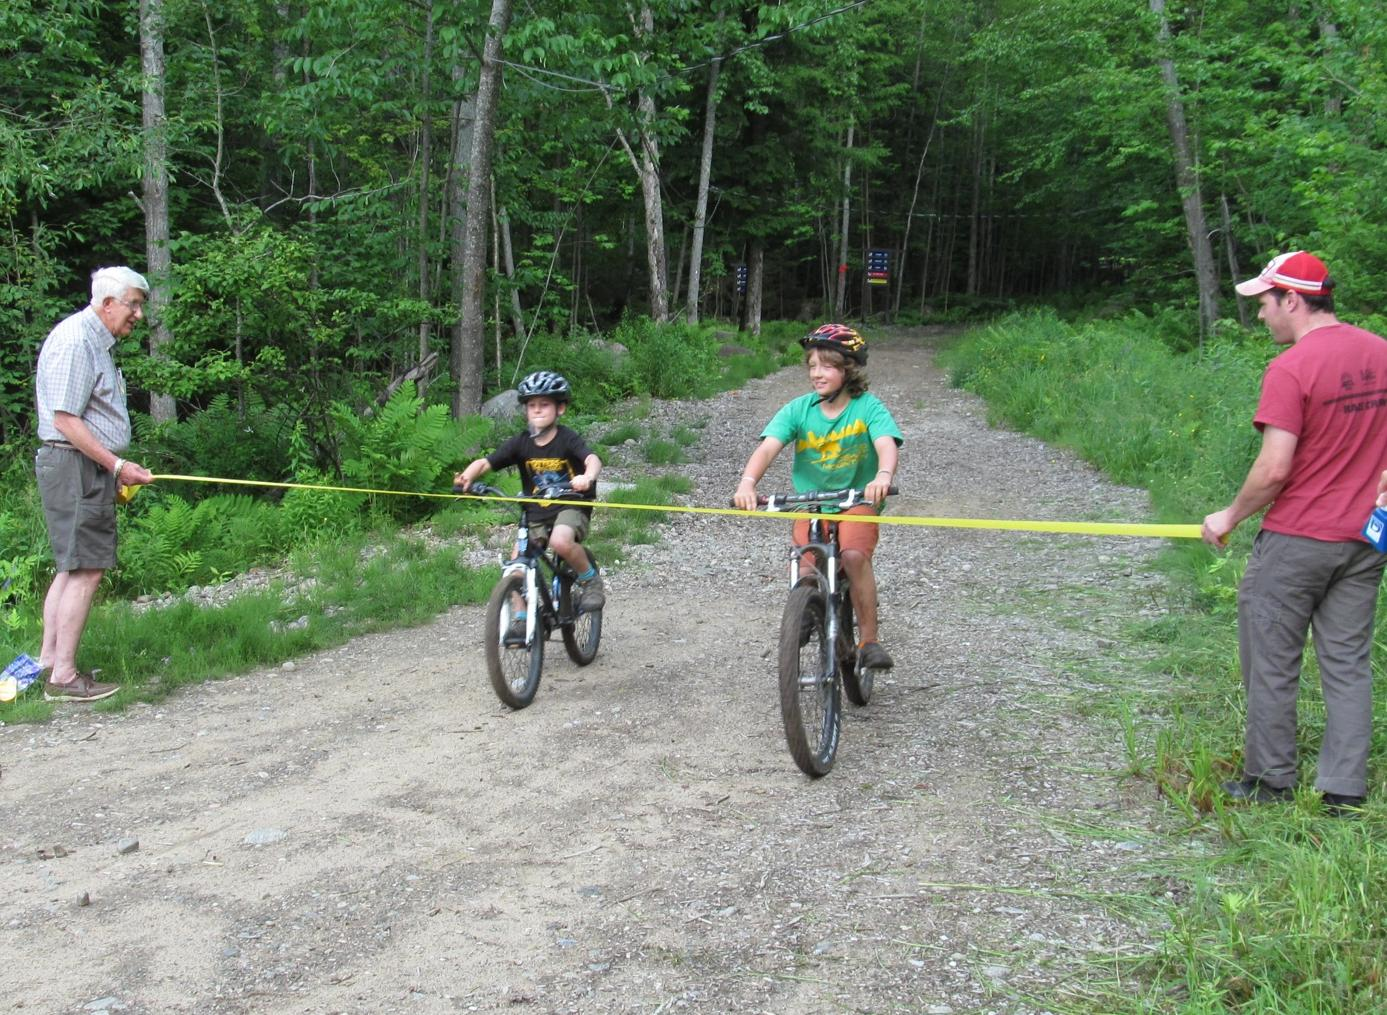 Dewey Mountain Celebrates New Mountain Bike Trails The